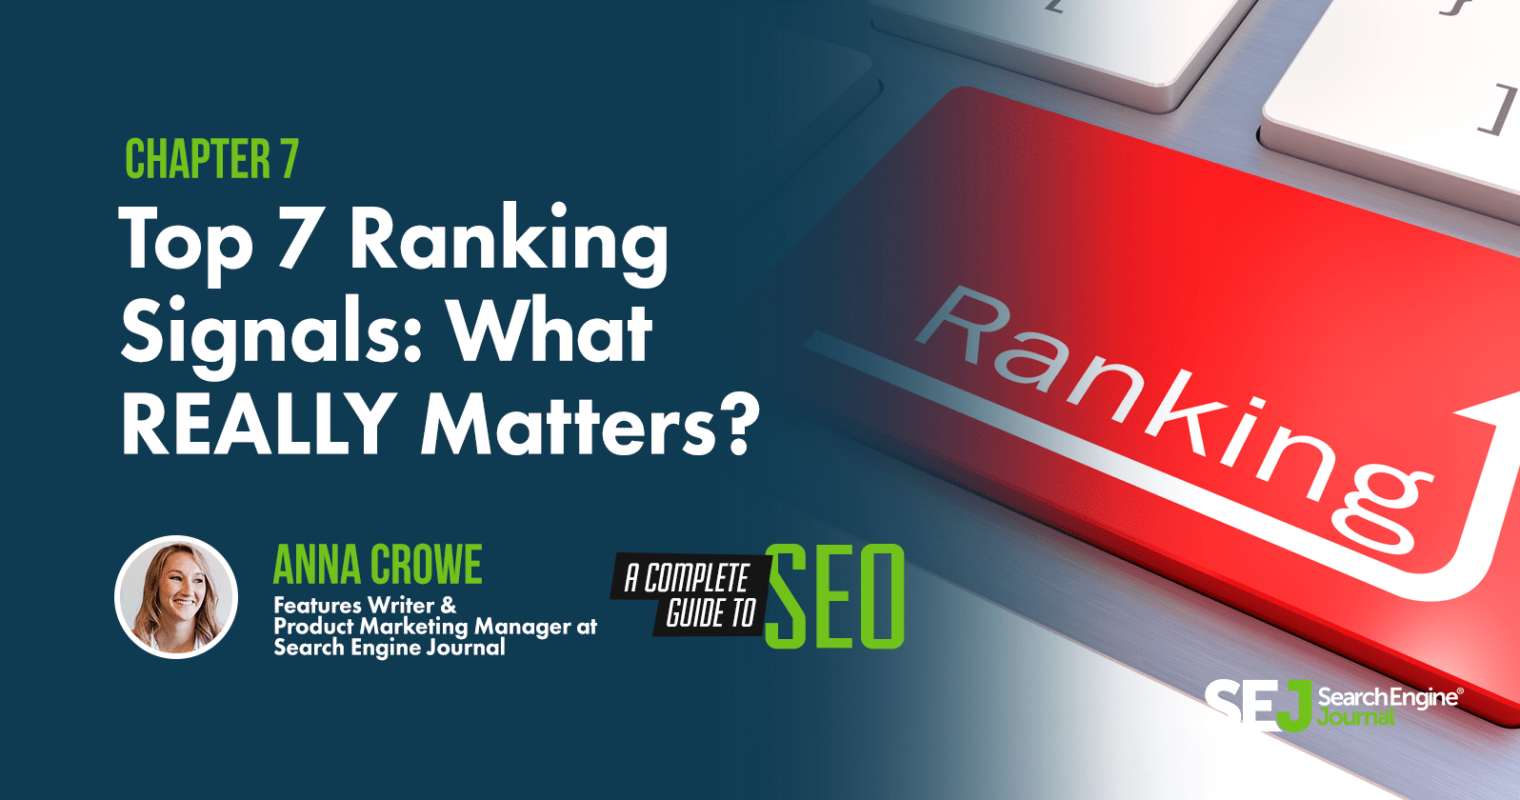 Top 7 Ranking Factors: What REALLY Matters for SEO